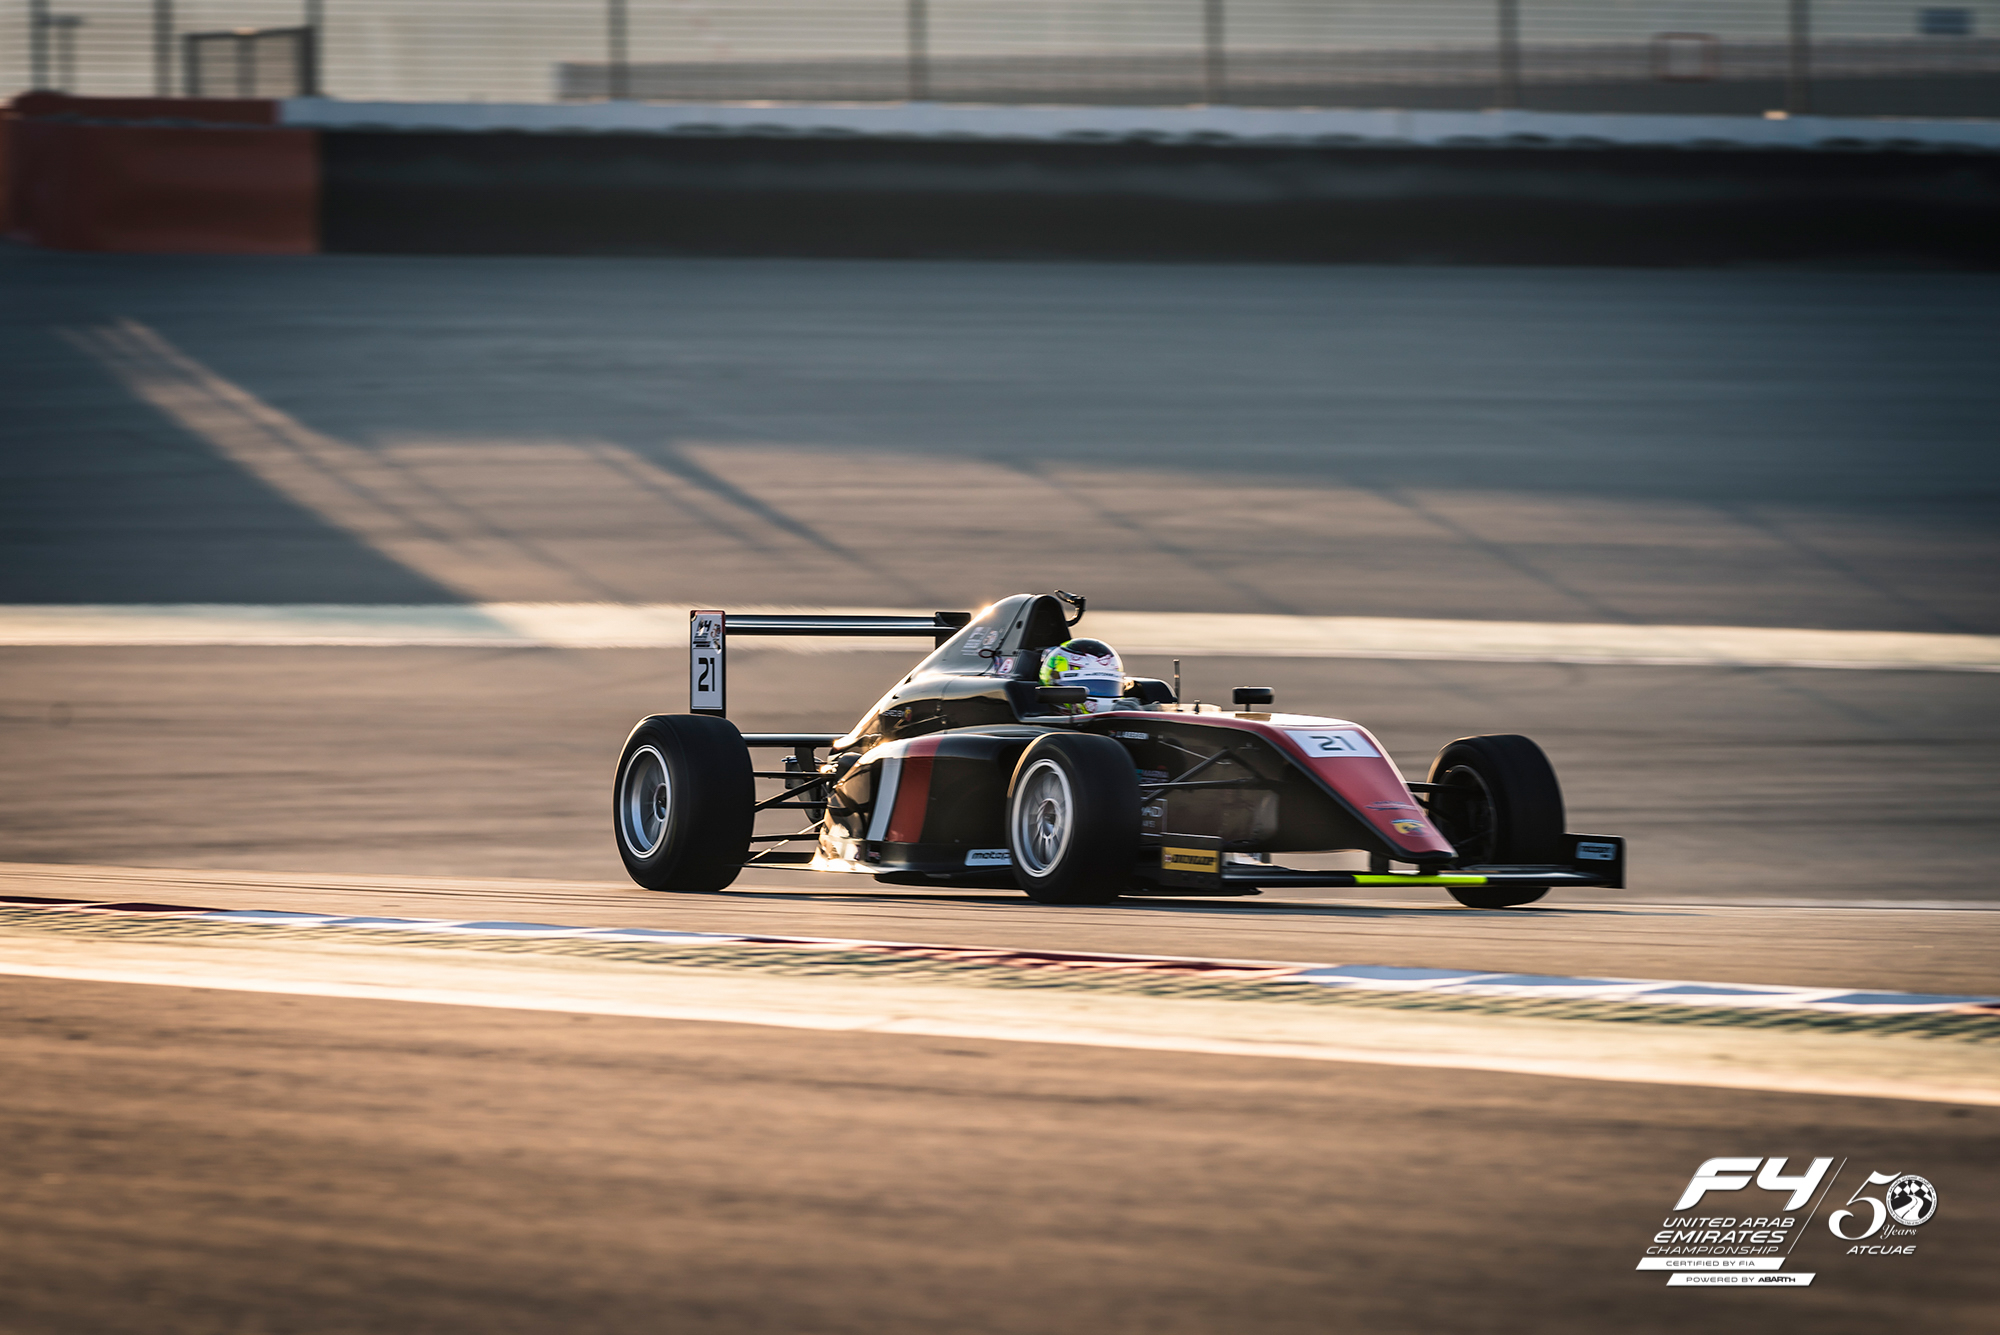 2016 10 30   Racing   Second Round   F4   Dubai    1 Of 1